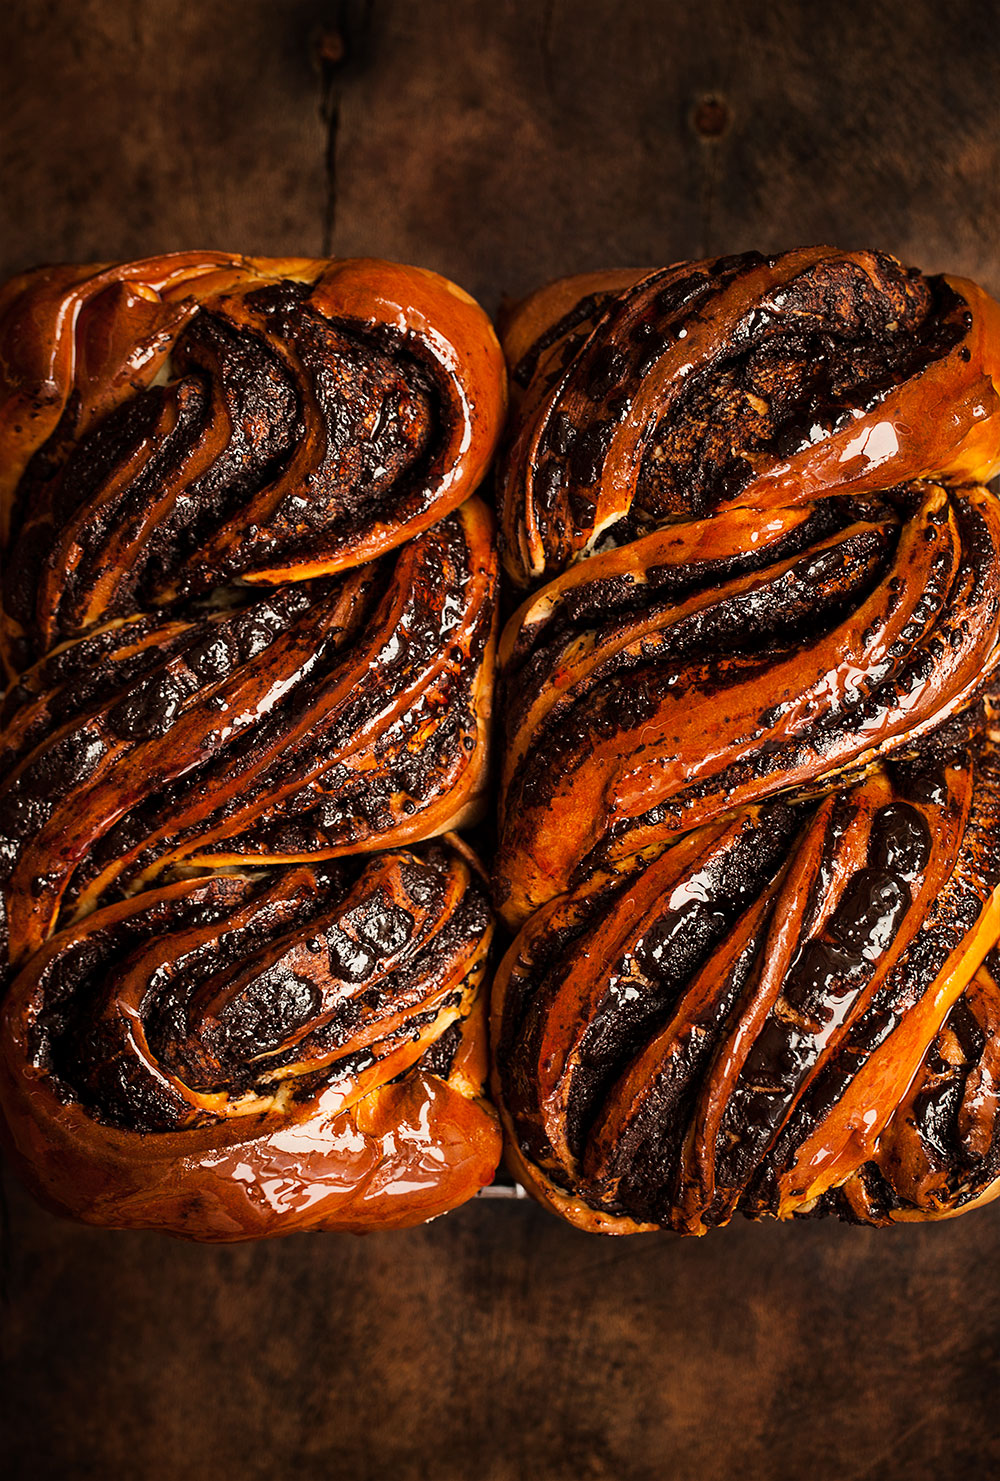 Chocolate babkas